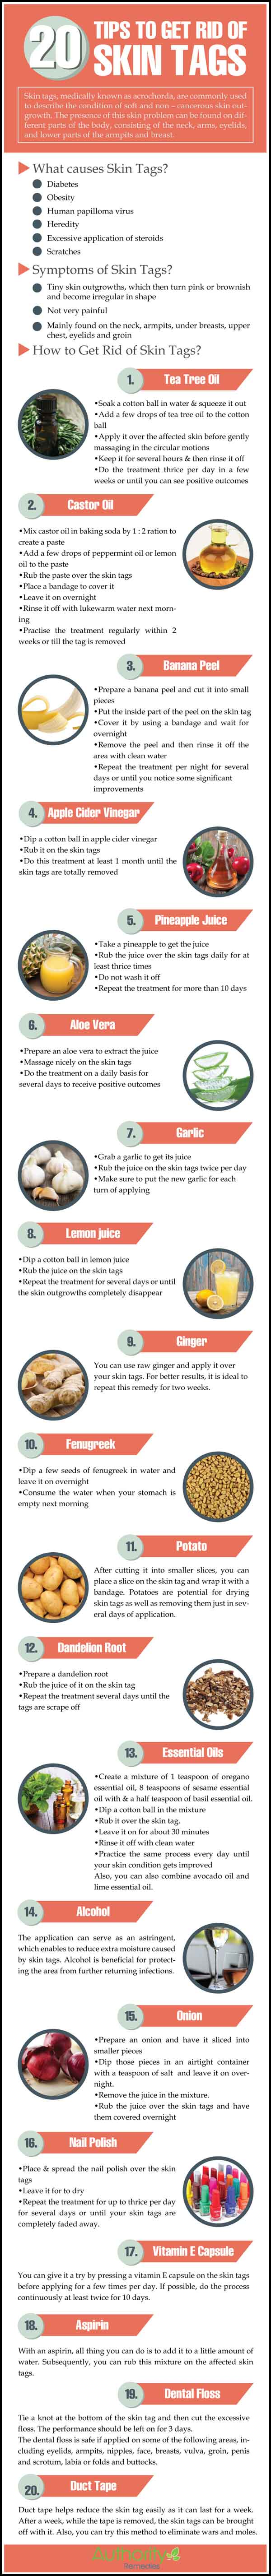 Top Home Remedies for Skin Tags<span class=